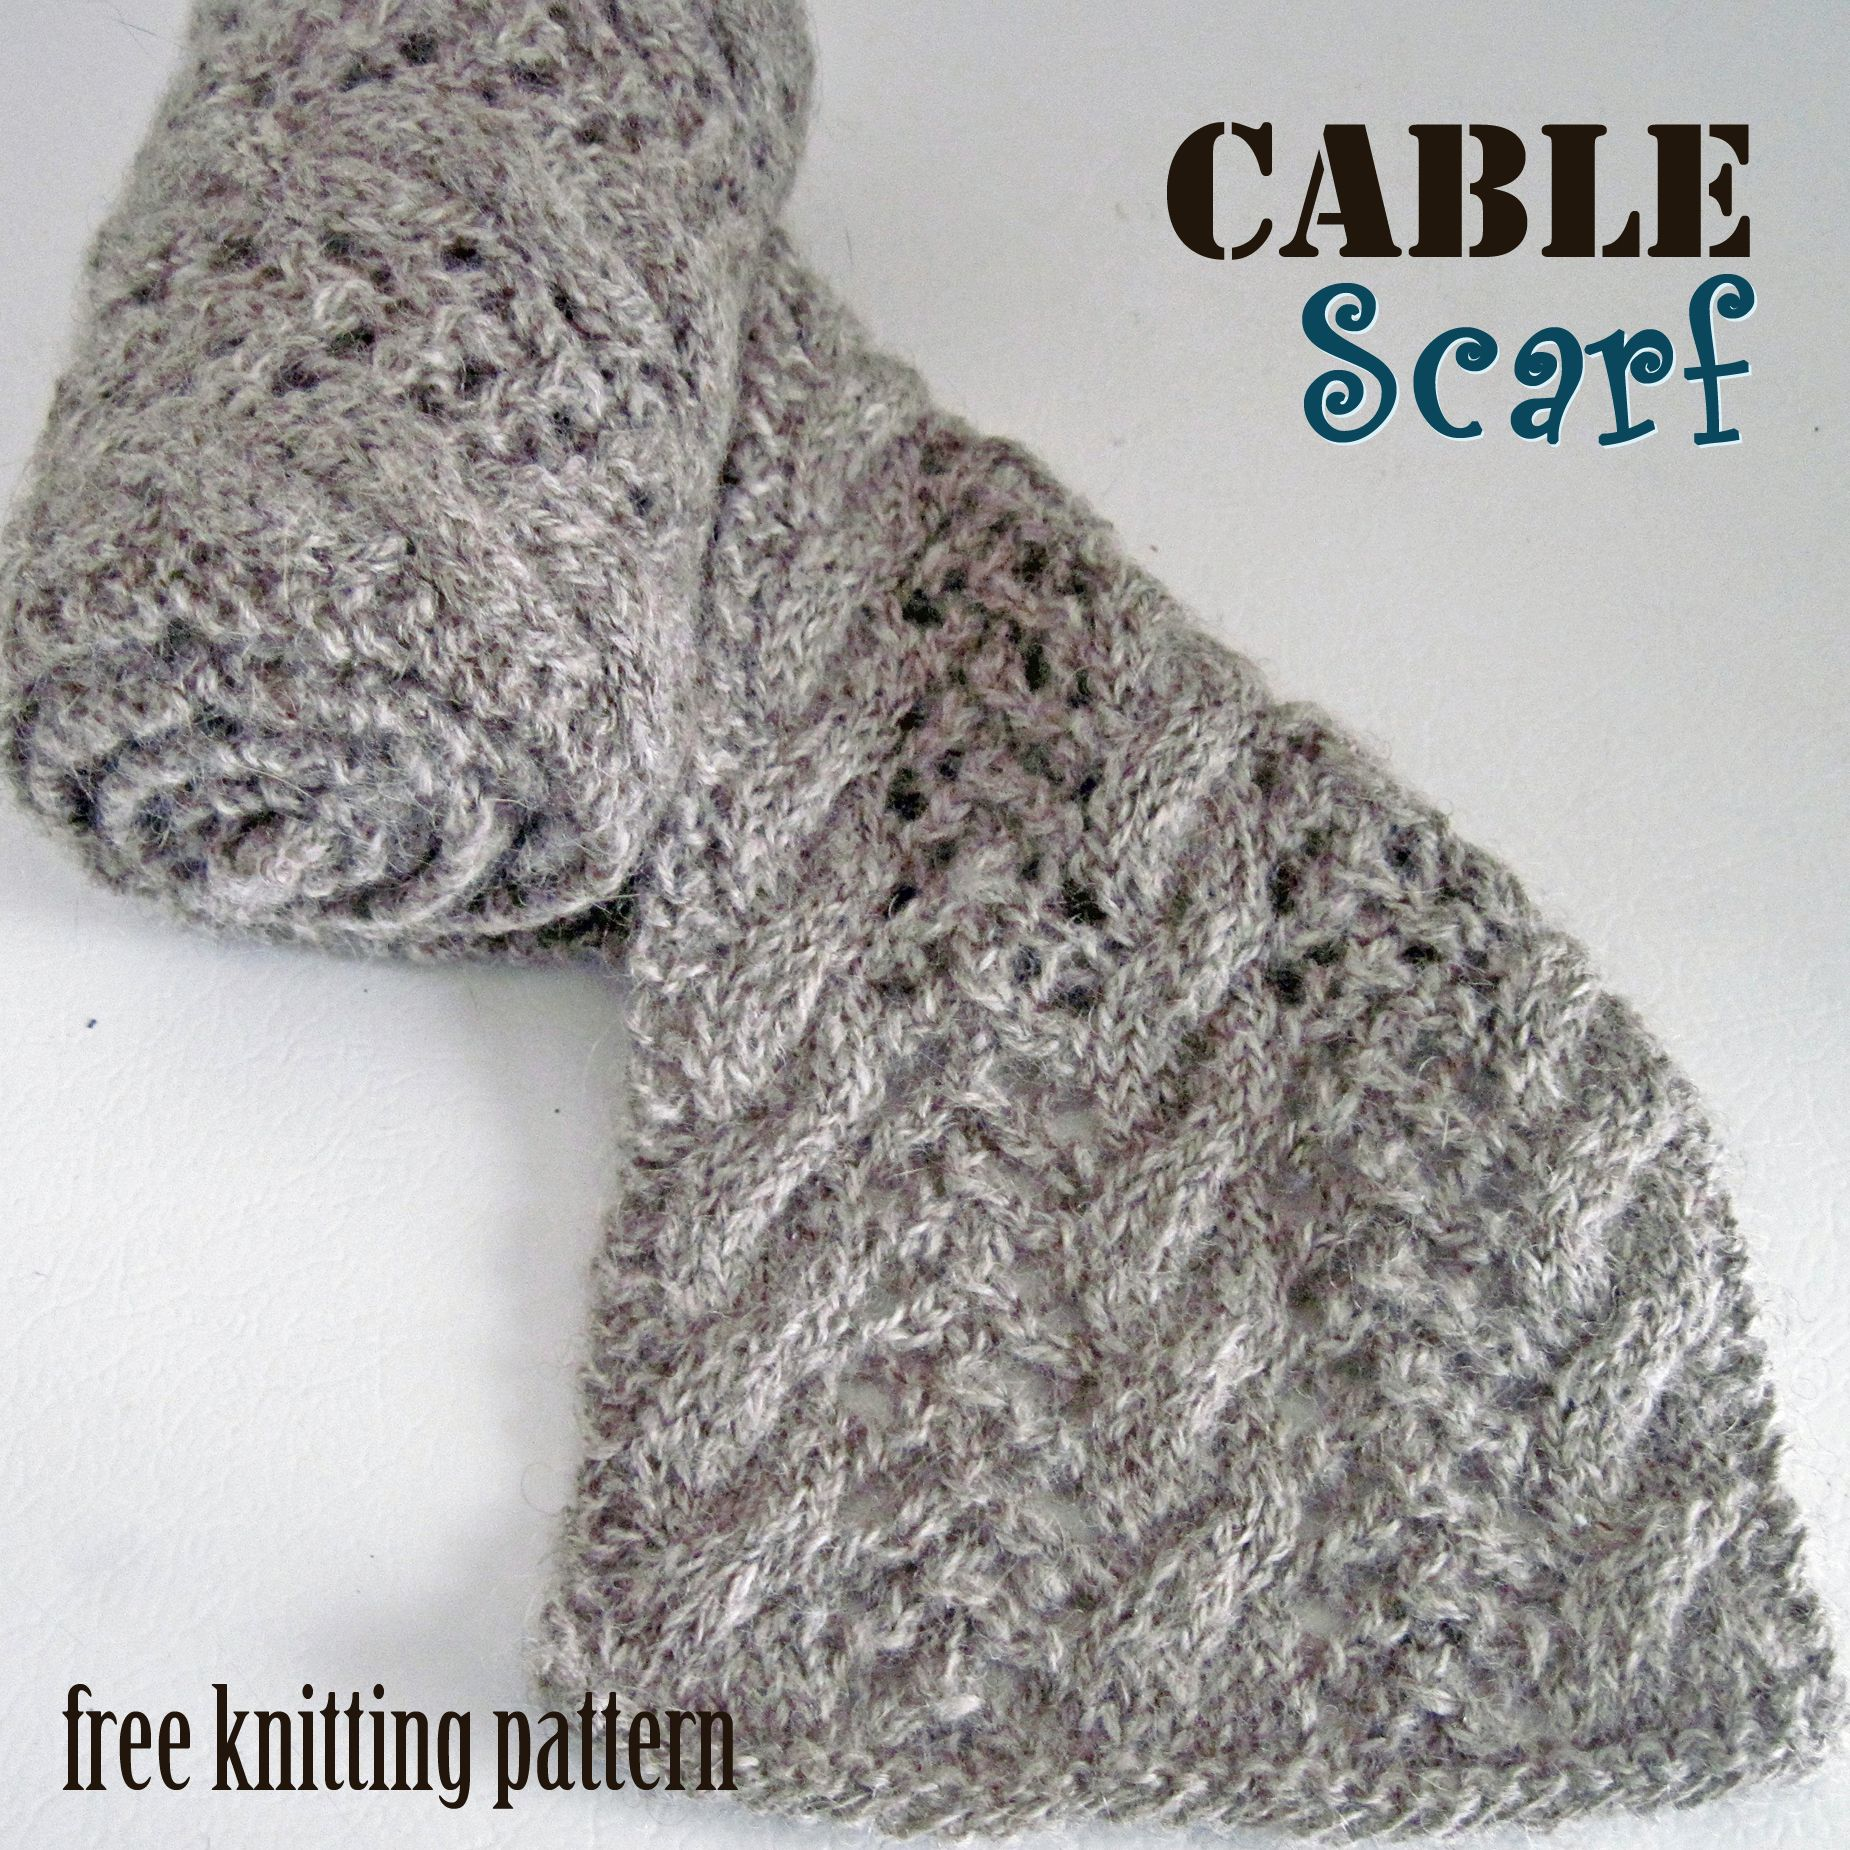 Cable Scarf free knitting pattern. | C O W L S and S C A R V E S ...